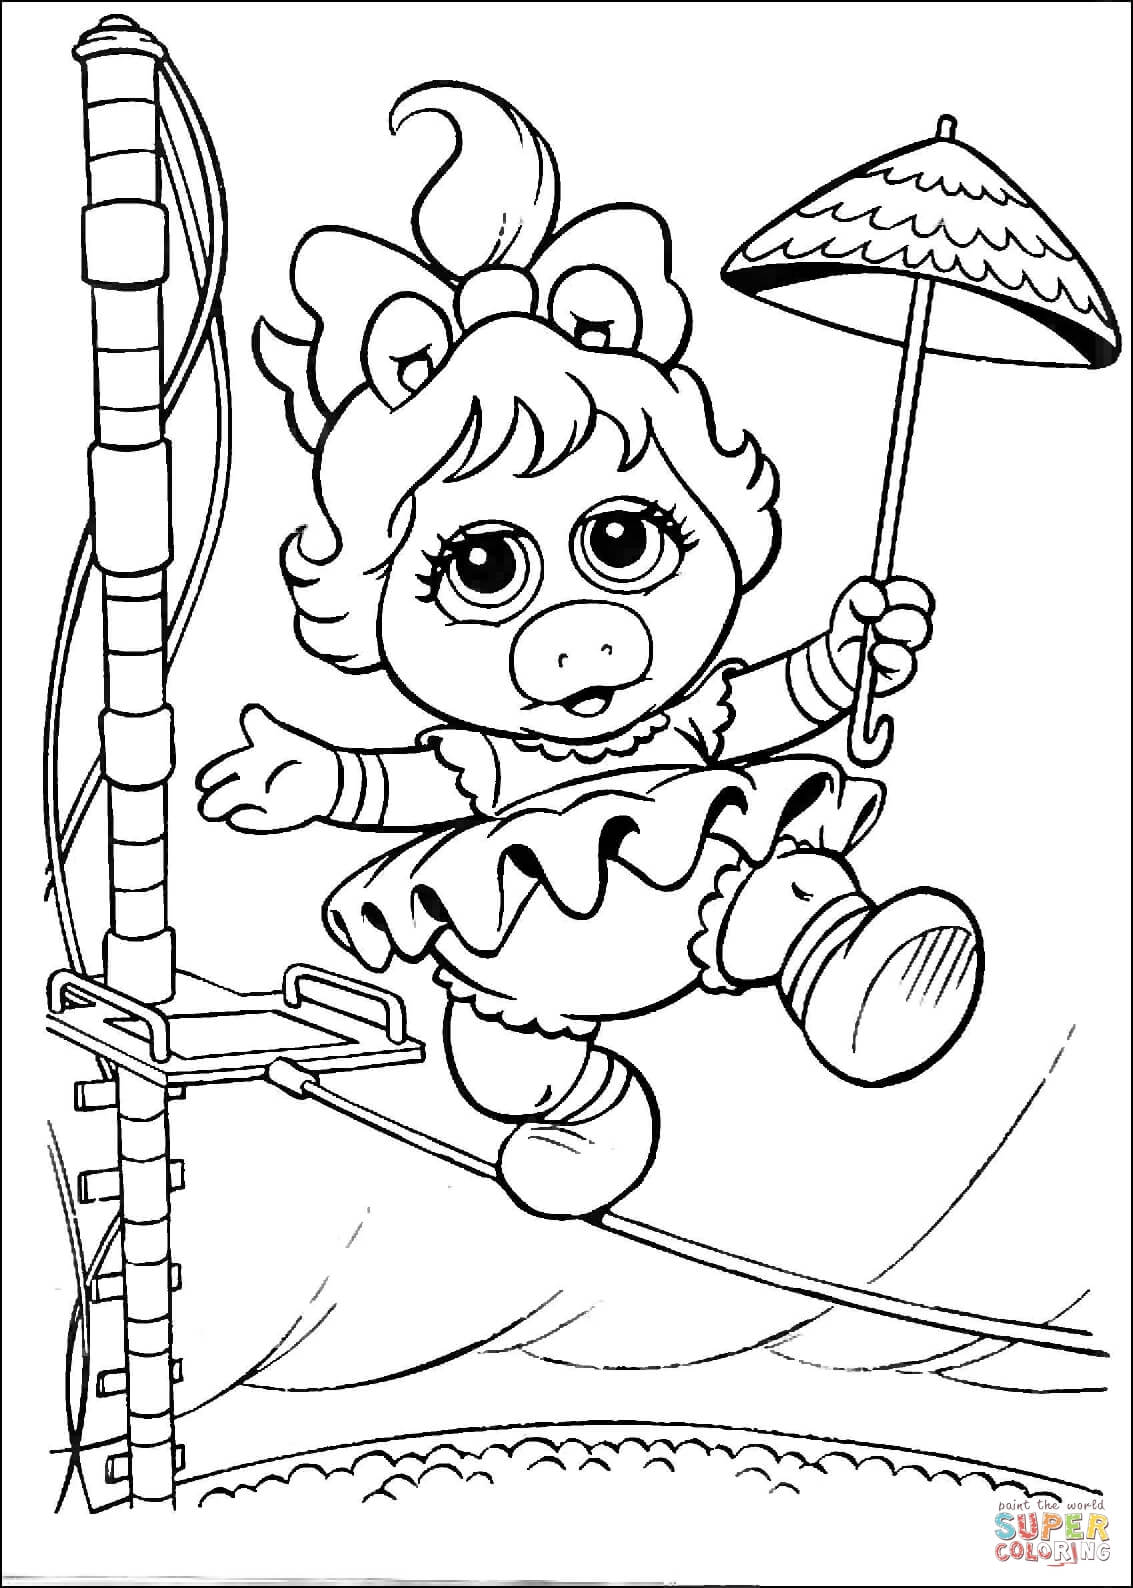 Baby Miss Piggy Is Walking On A Rope Coloring Page